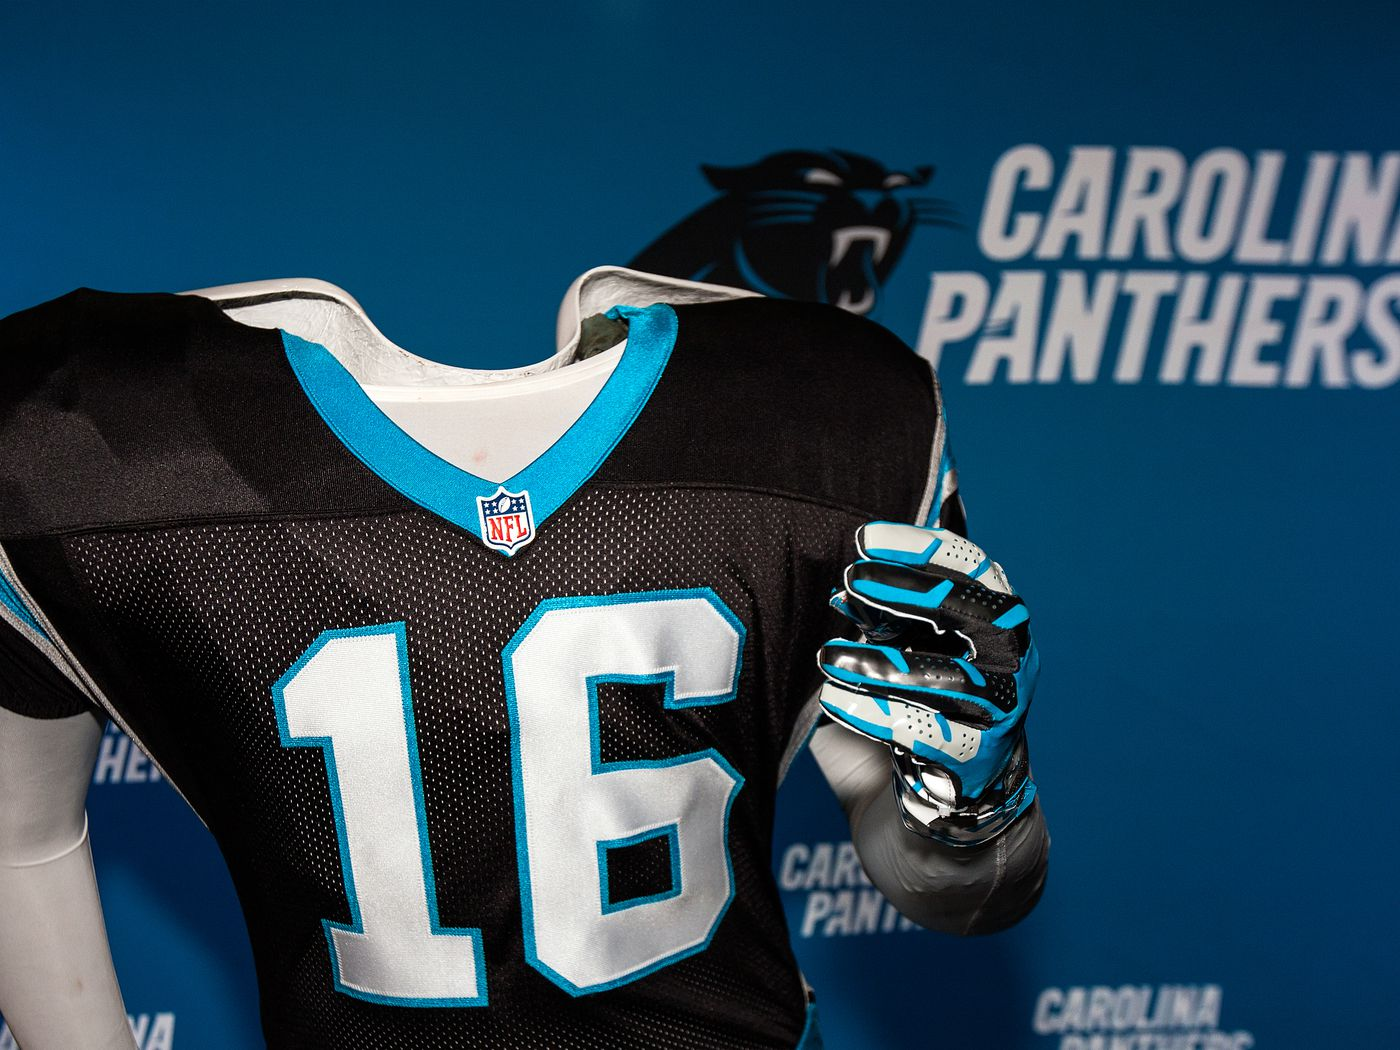 024b6eb7 It's time for the Carolina Panthers to upgrade their uniforms - Cat ...